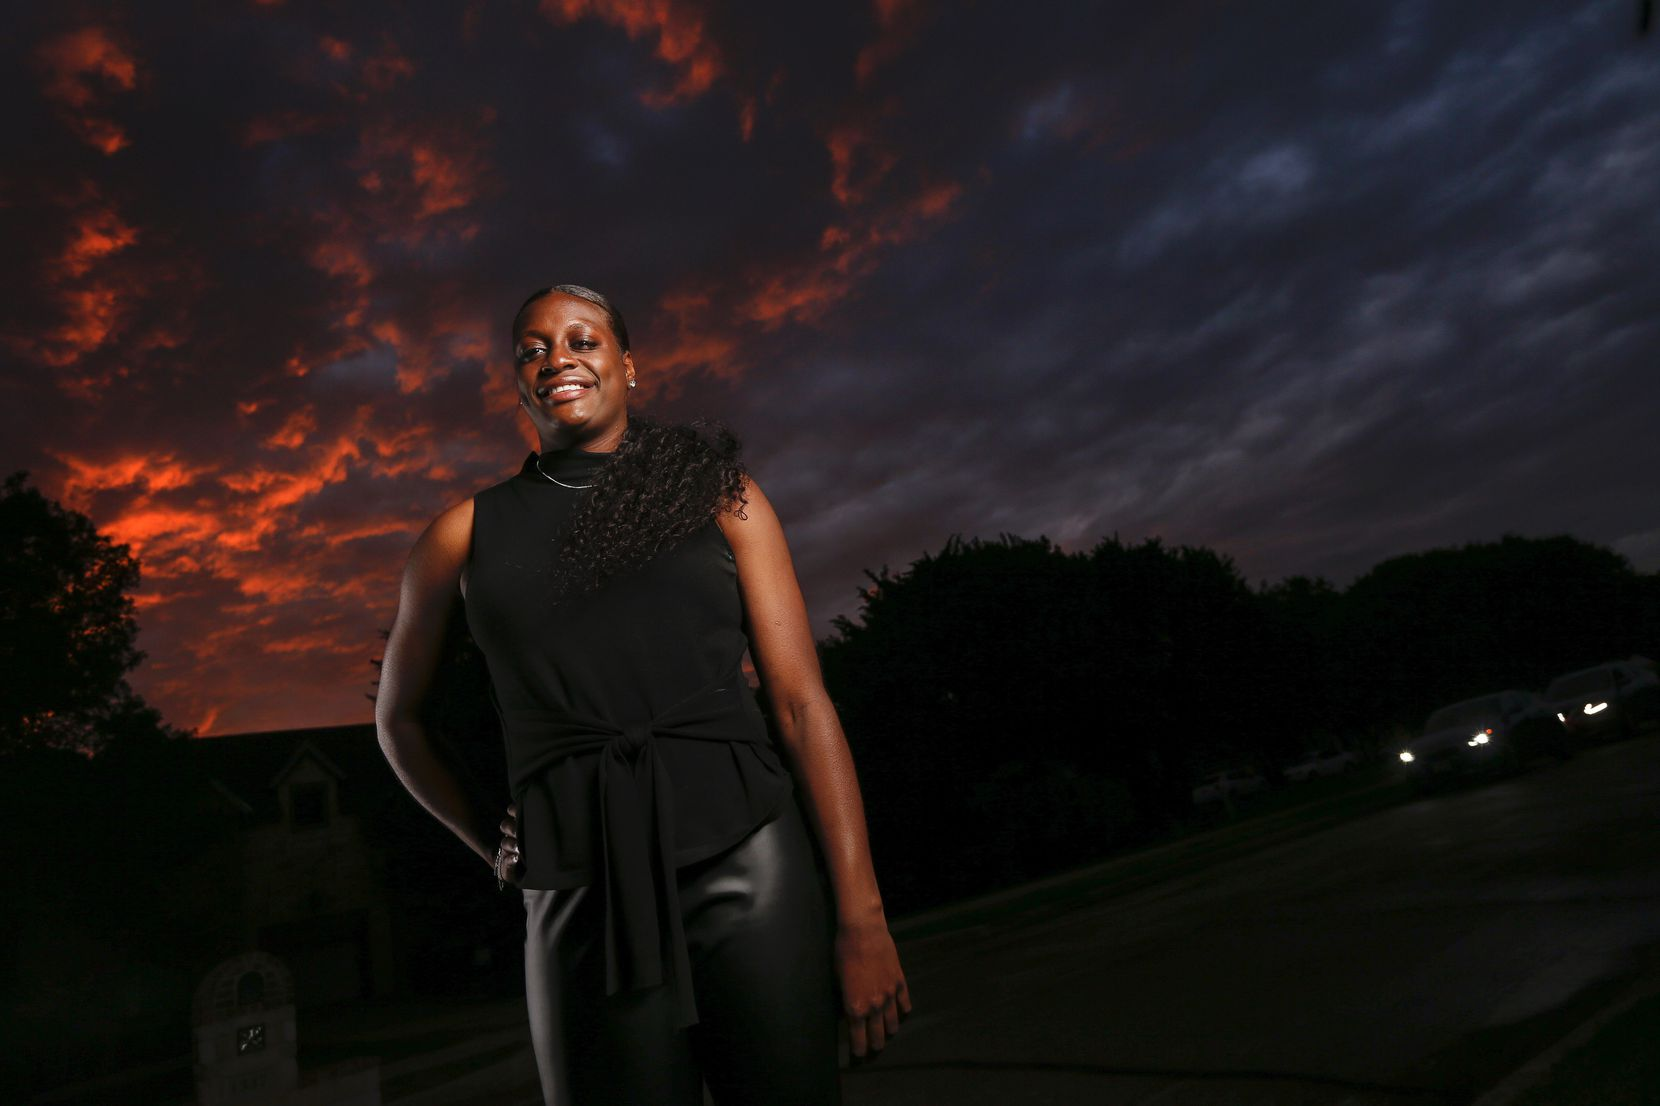 Joyner Holmes, formerly of Cedar Hill High School and the University of Texas, poses for a photograph outside her family's home after being drafted to the WNBA in the second round to the Seattle Storm on Friday, April 17, 2020, in Cedar Hill, Texas.